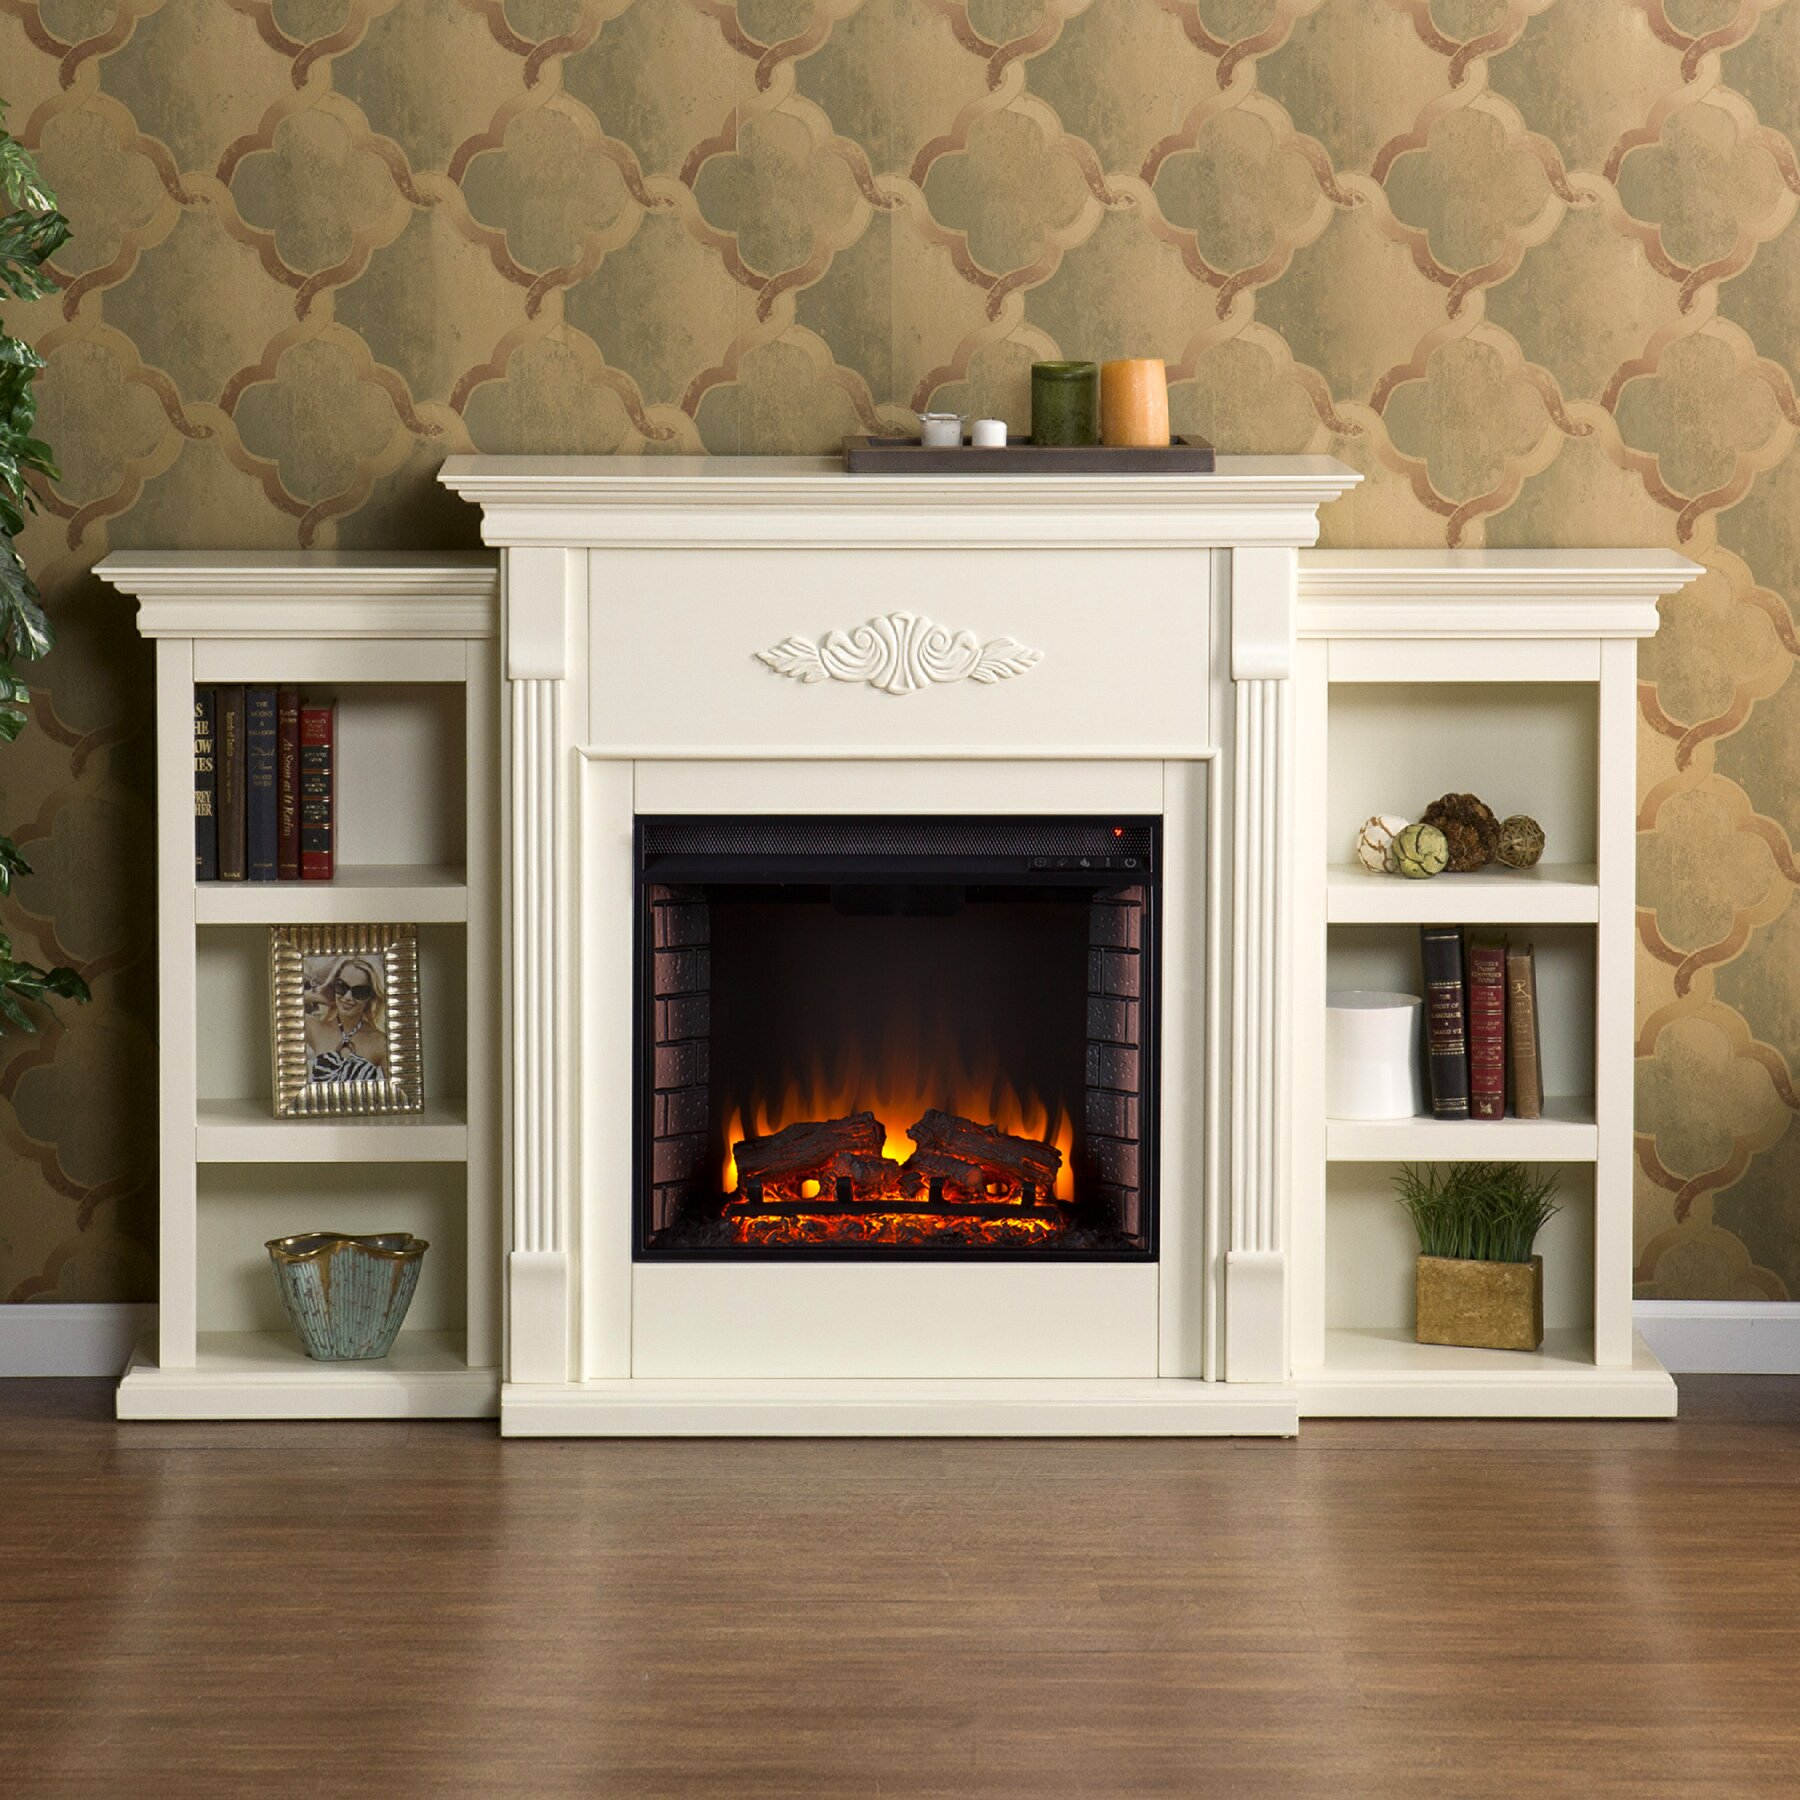 Quality craft electric fireplace - Quality Craft Electric Fireplace Quality Craft Electric Fireplace Quality Craft Electric Fireplace Quality Craft Electric